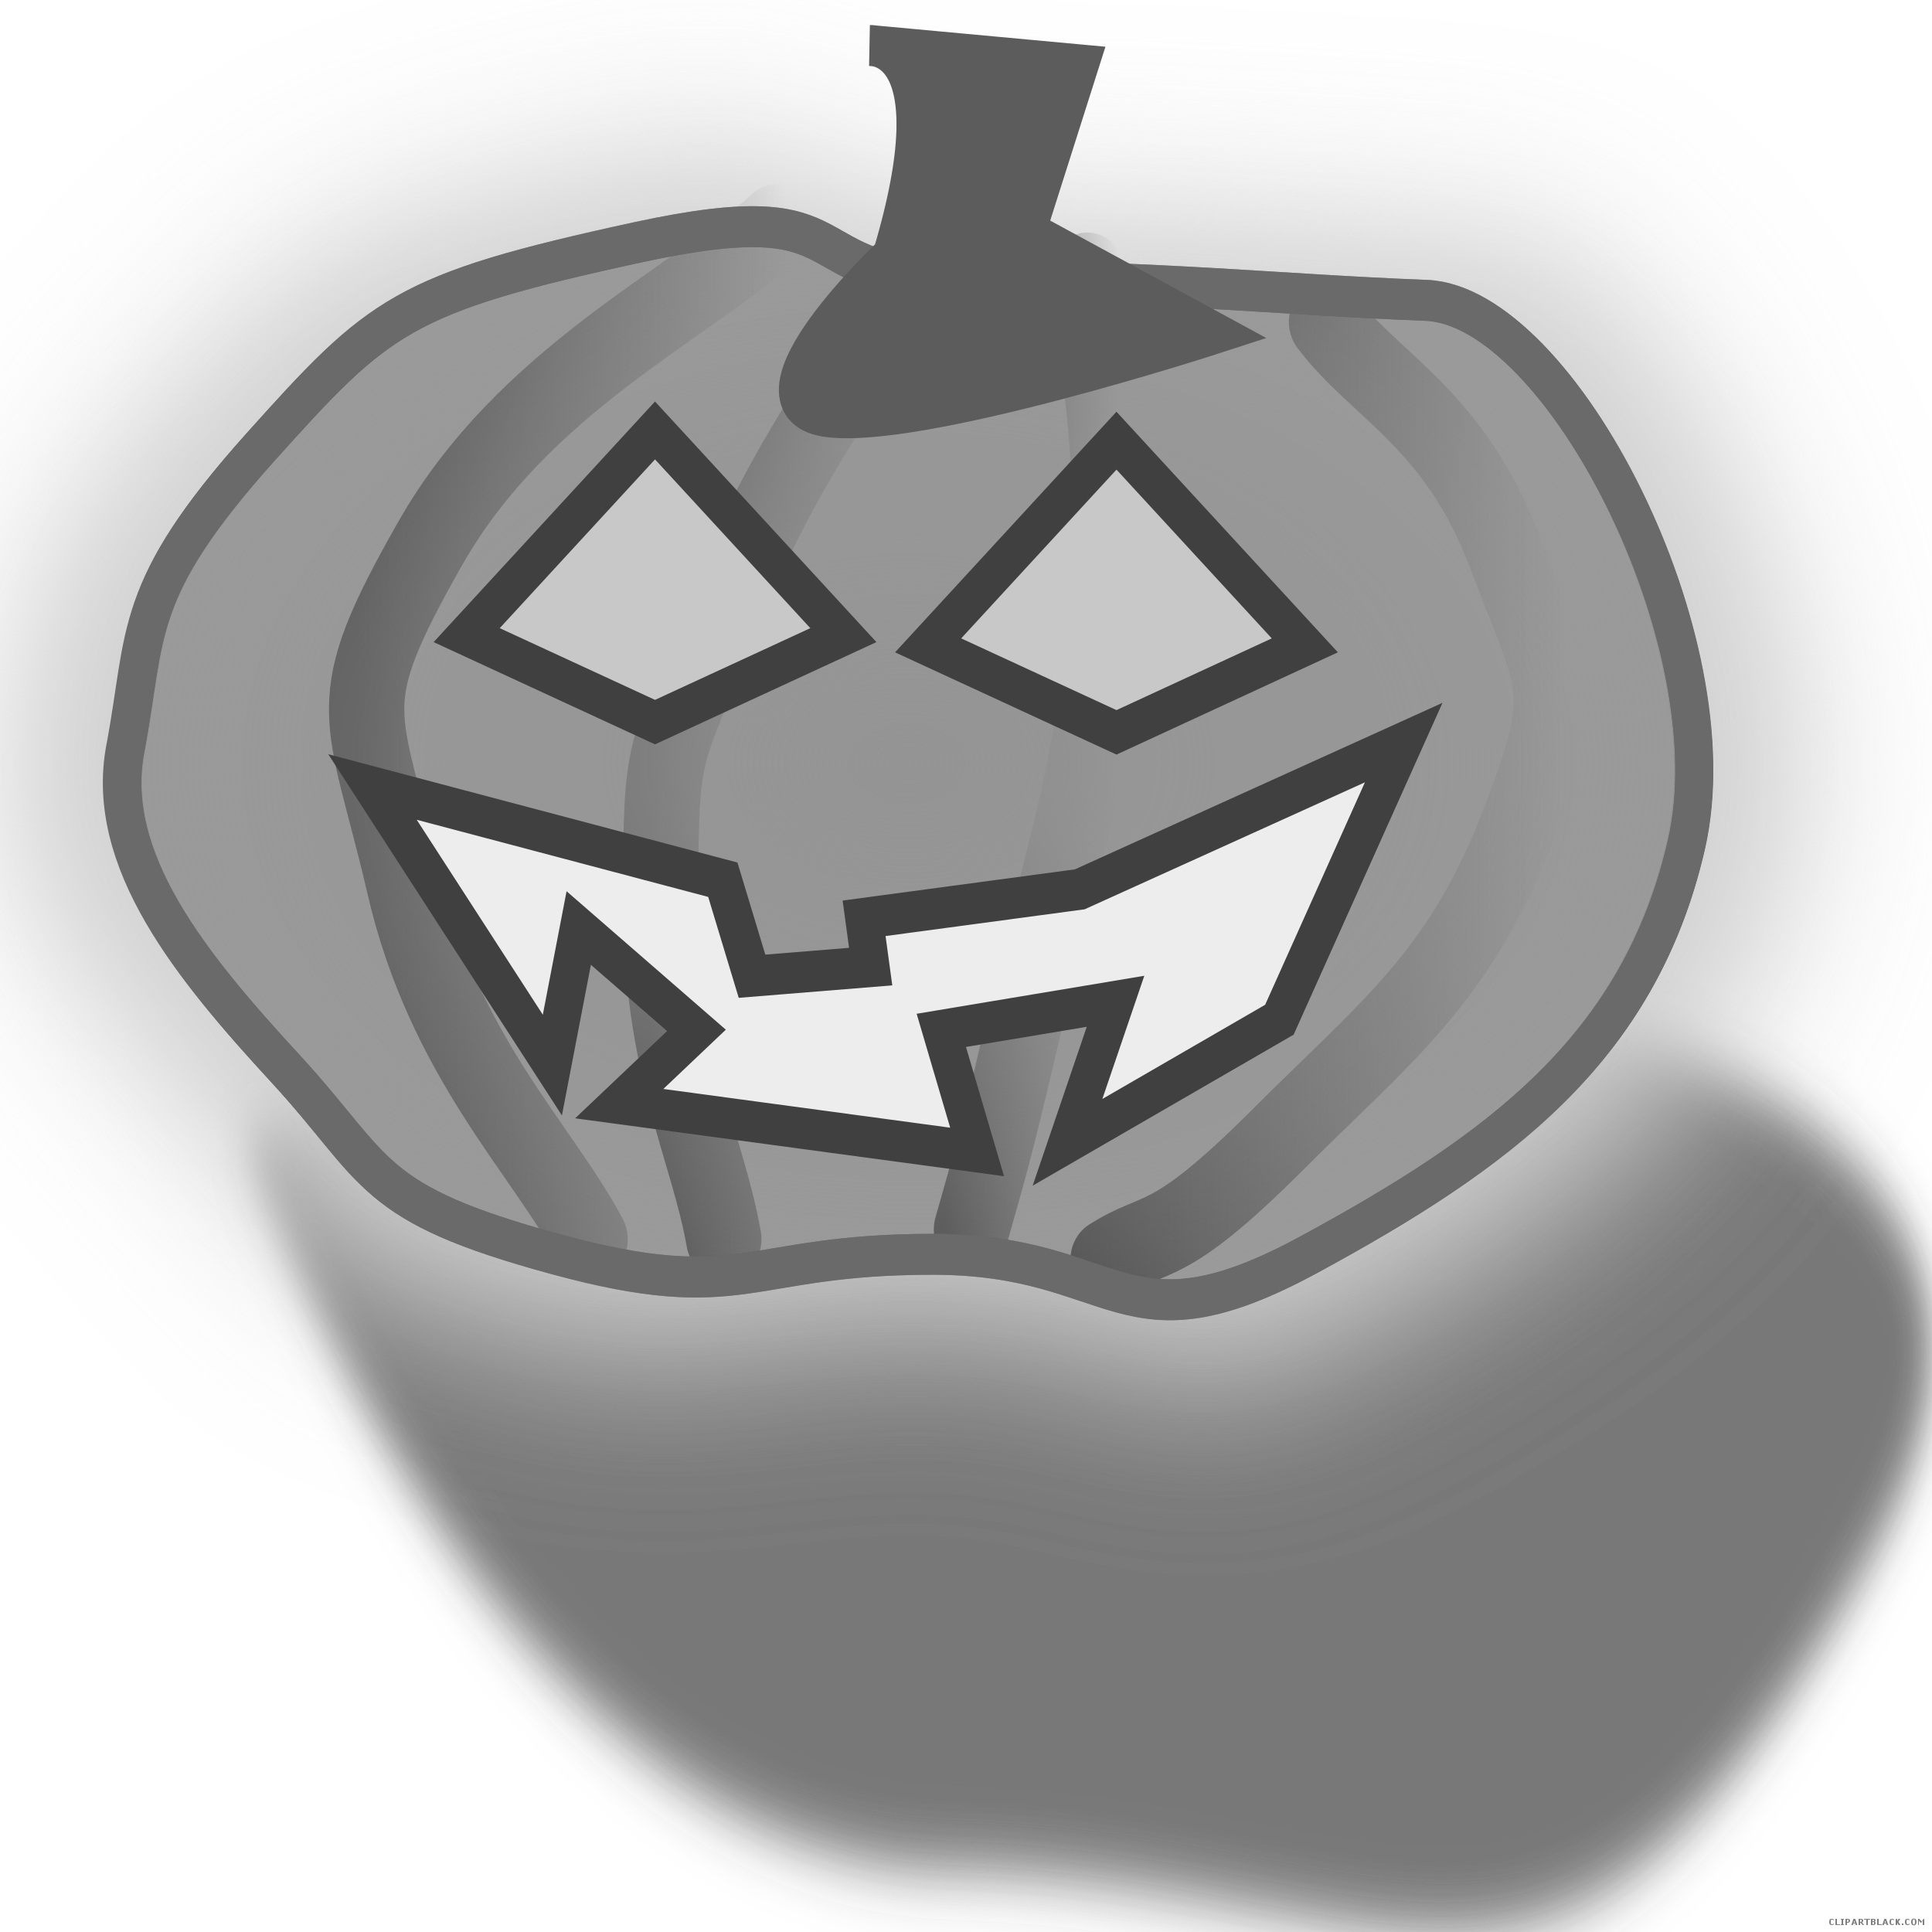 Apple clipart greyscale image freeuse library Worm - ClipartBlack.com image freeuse library